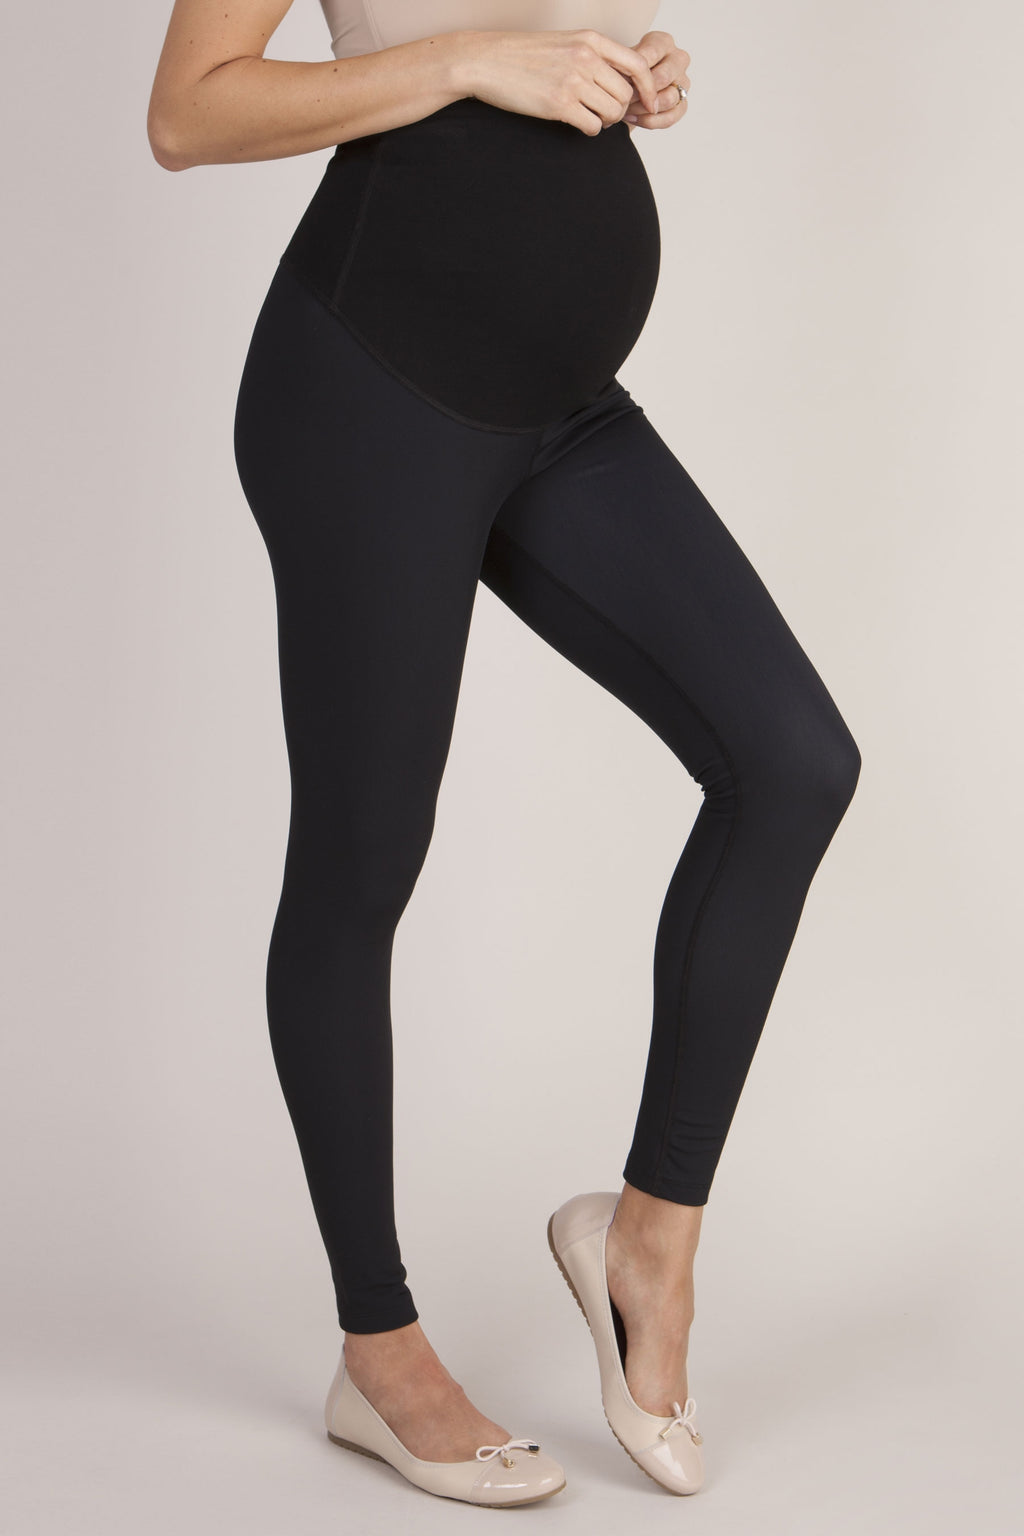 Seraphine Susannah Over Bump Thermal Maternity Leggings - Seven Women Maternity